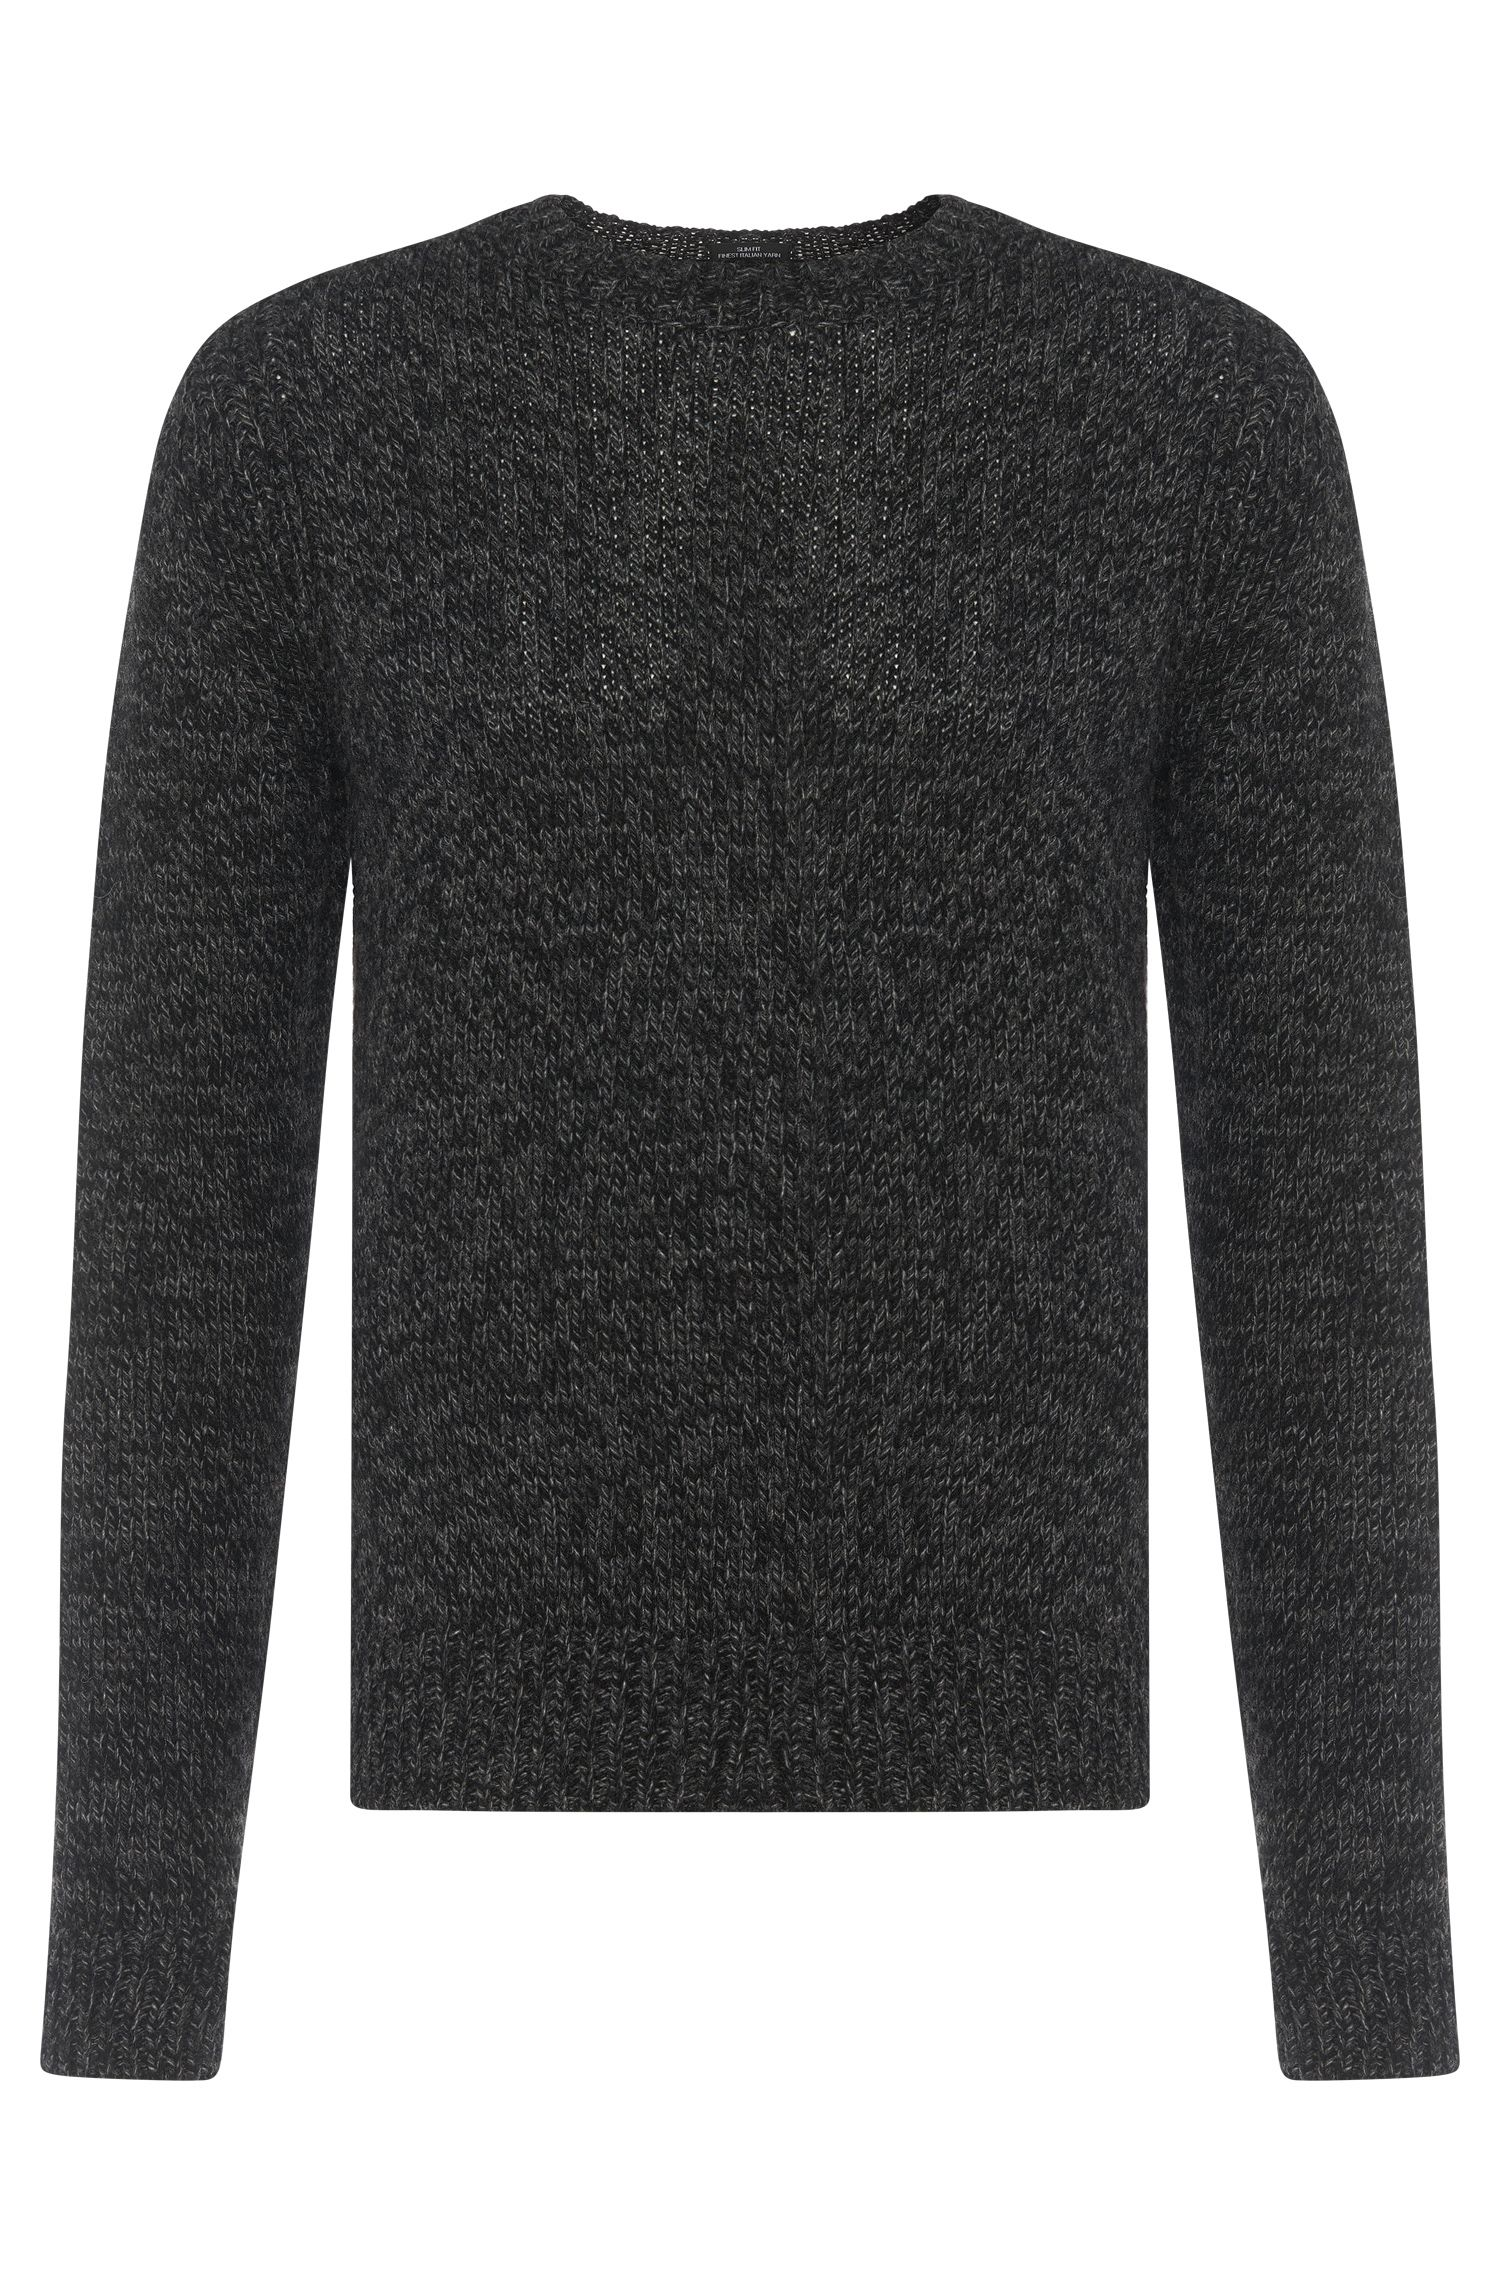 Mottled cashmere blend Tailored sweater: 'T-Bianchi'